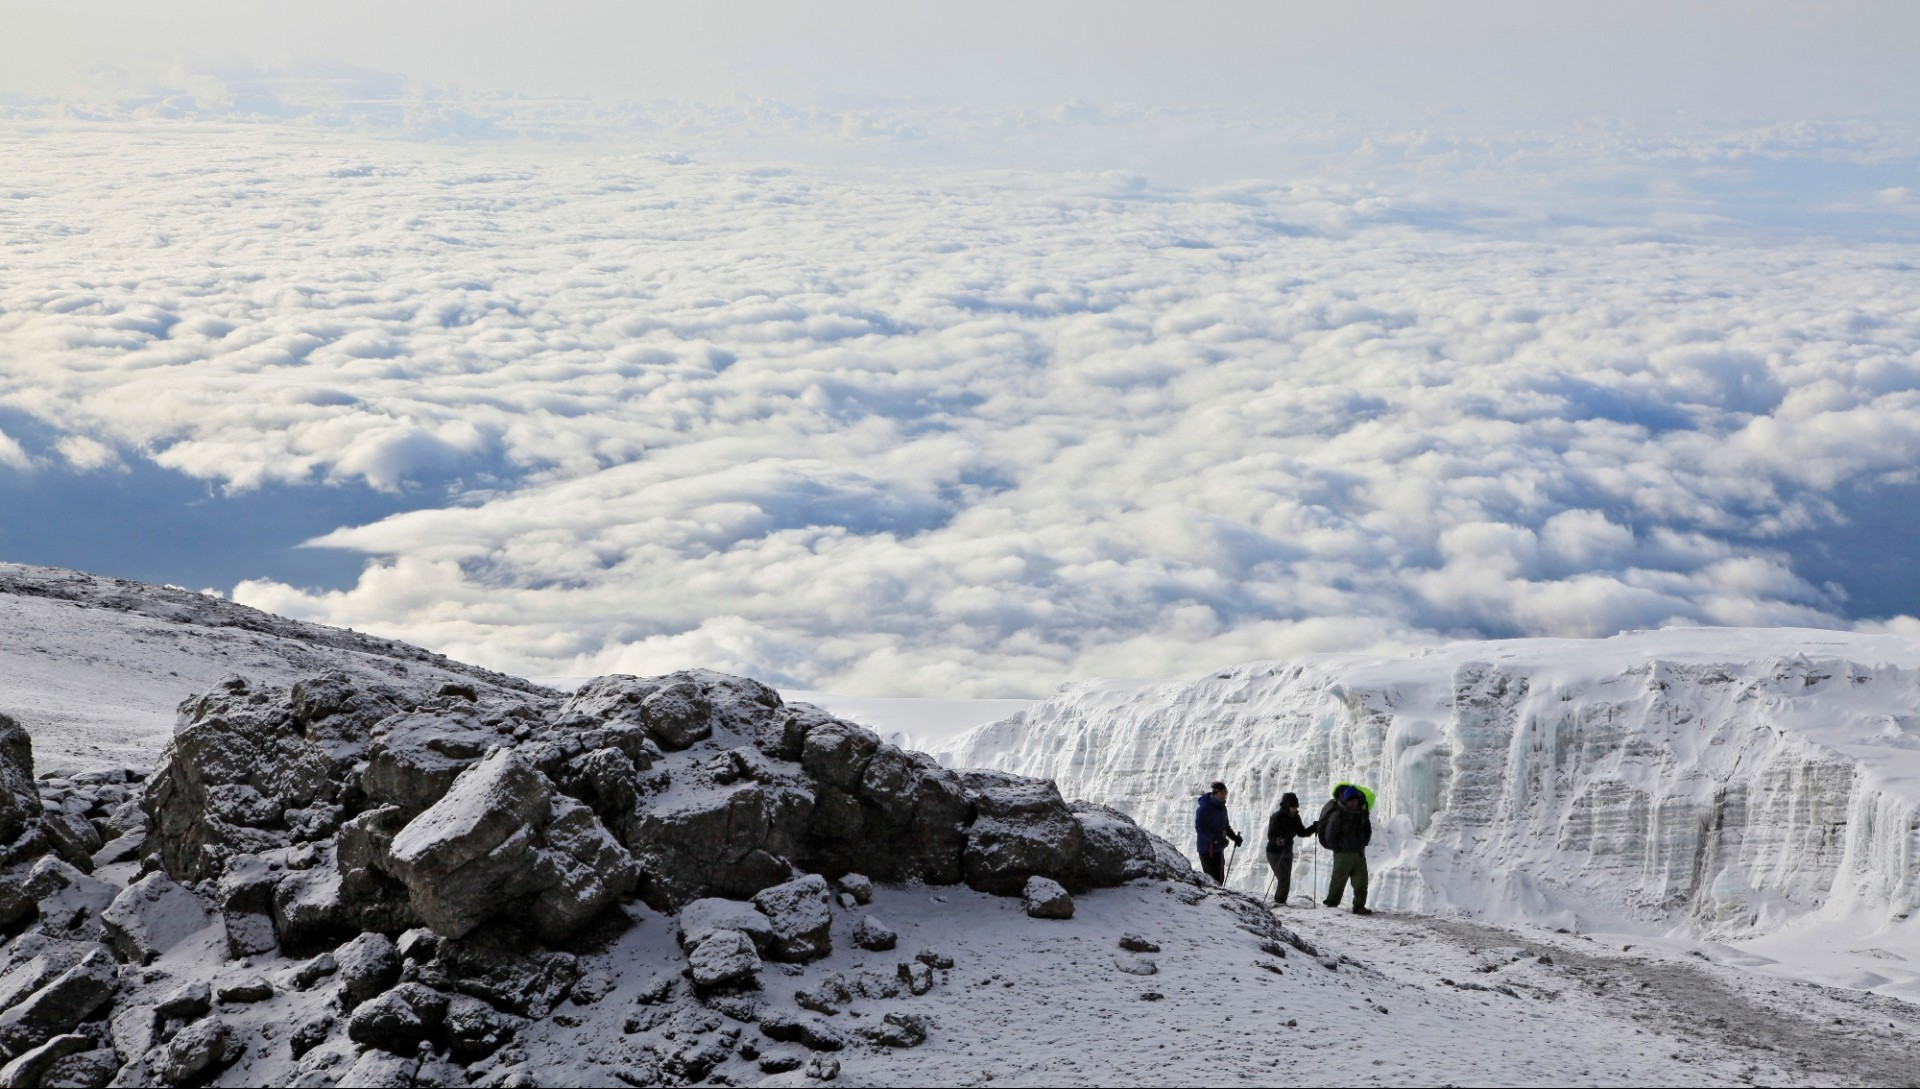 Climbers ascending the crater rim of Mt. Kilimanjaro, up from Stella Point, as seen from the summit area.